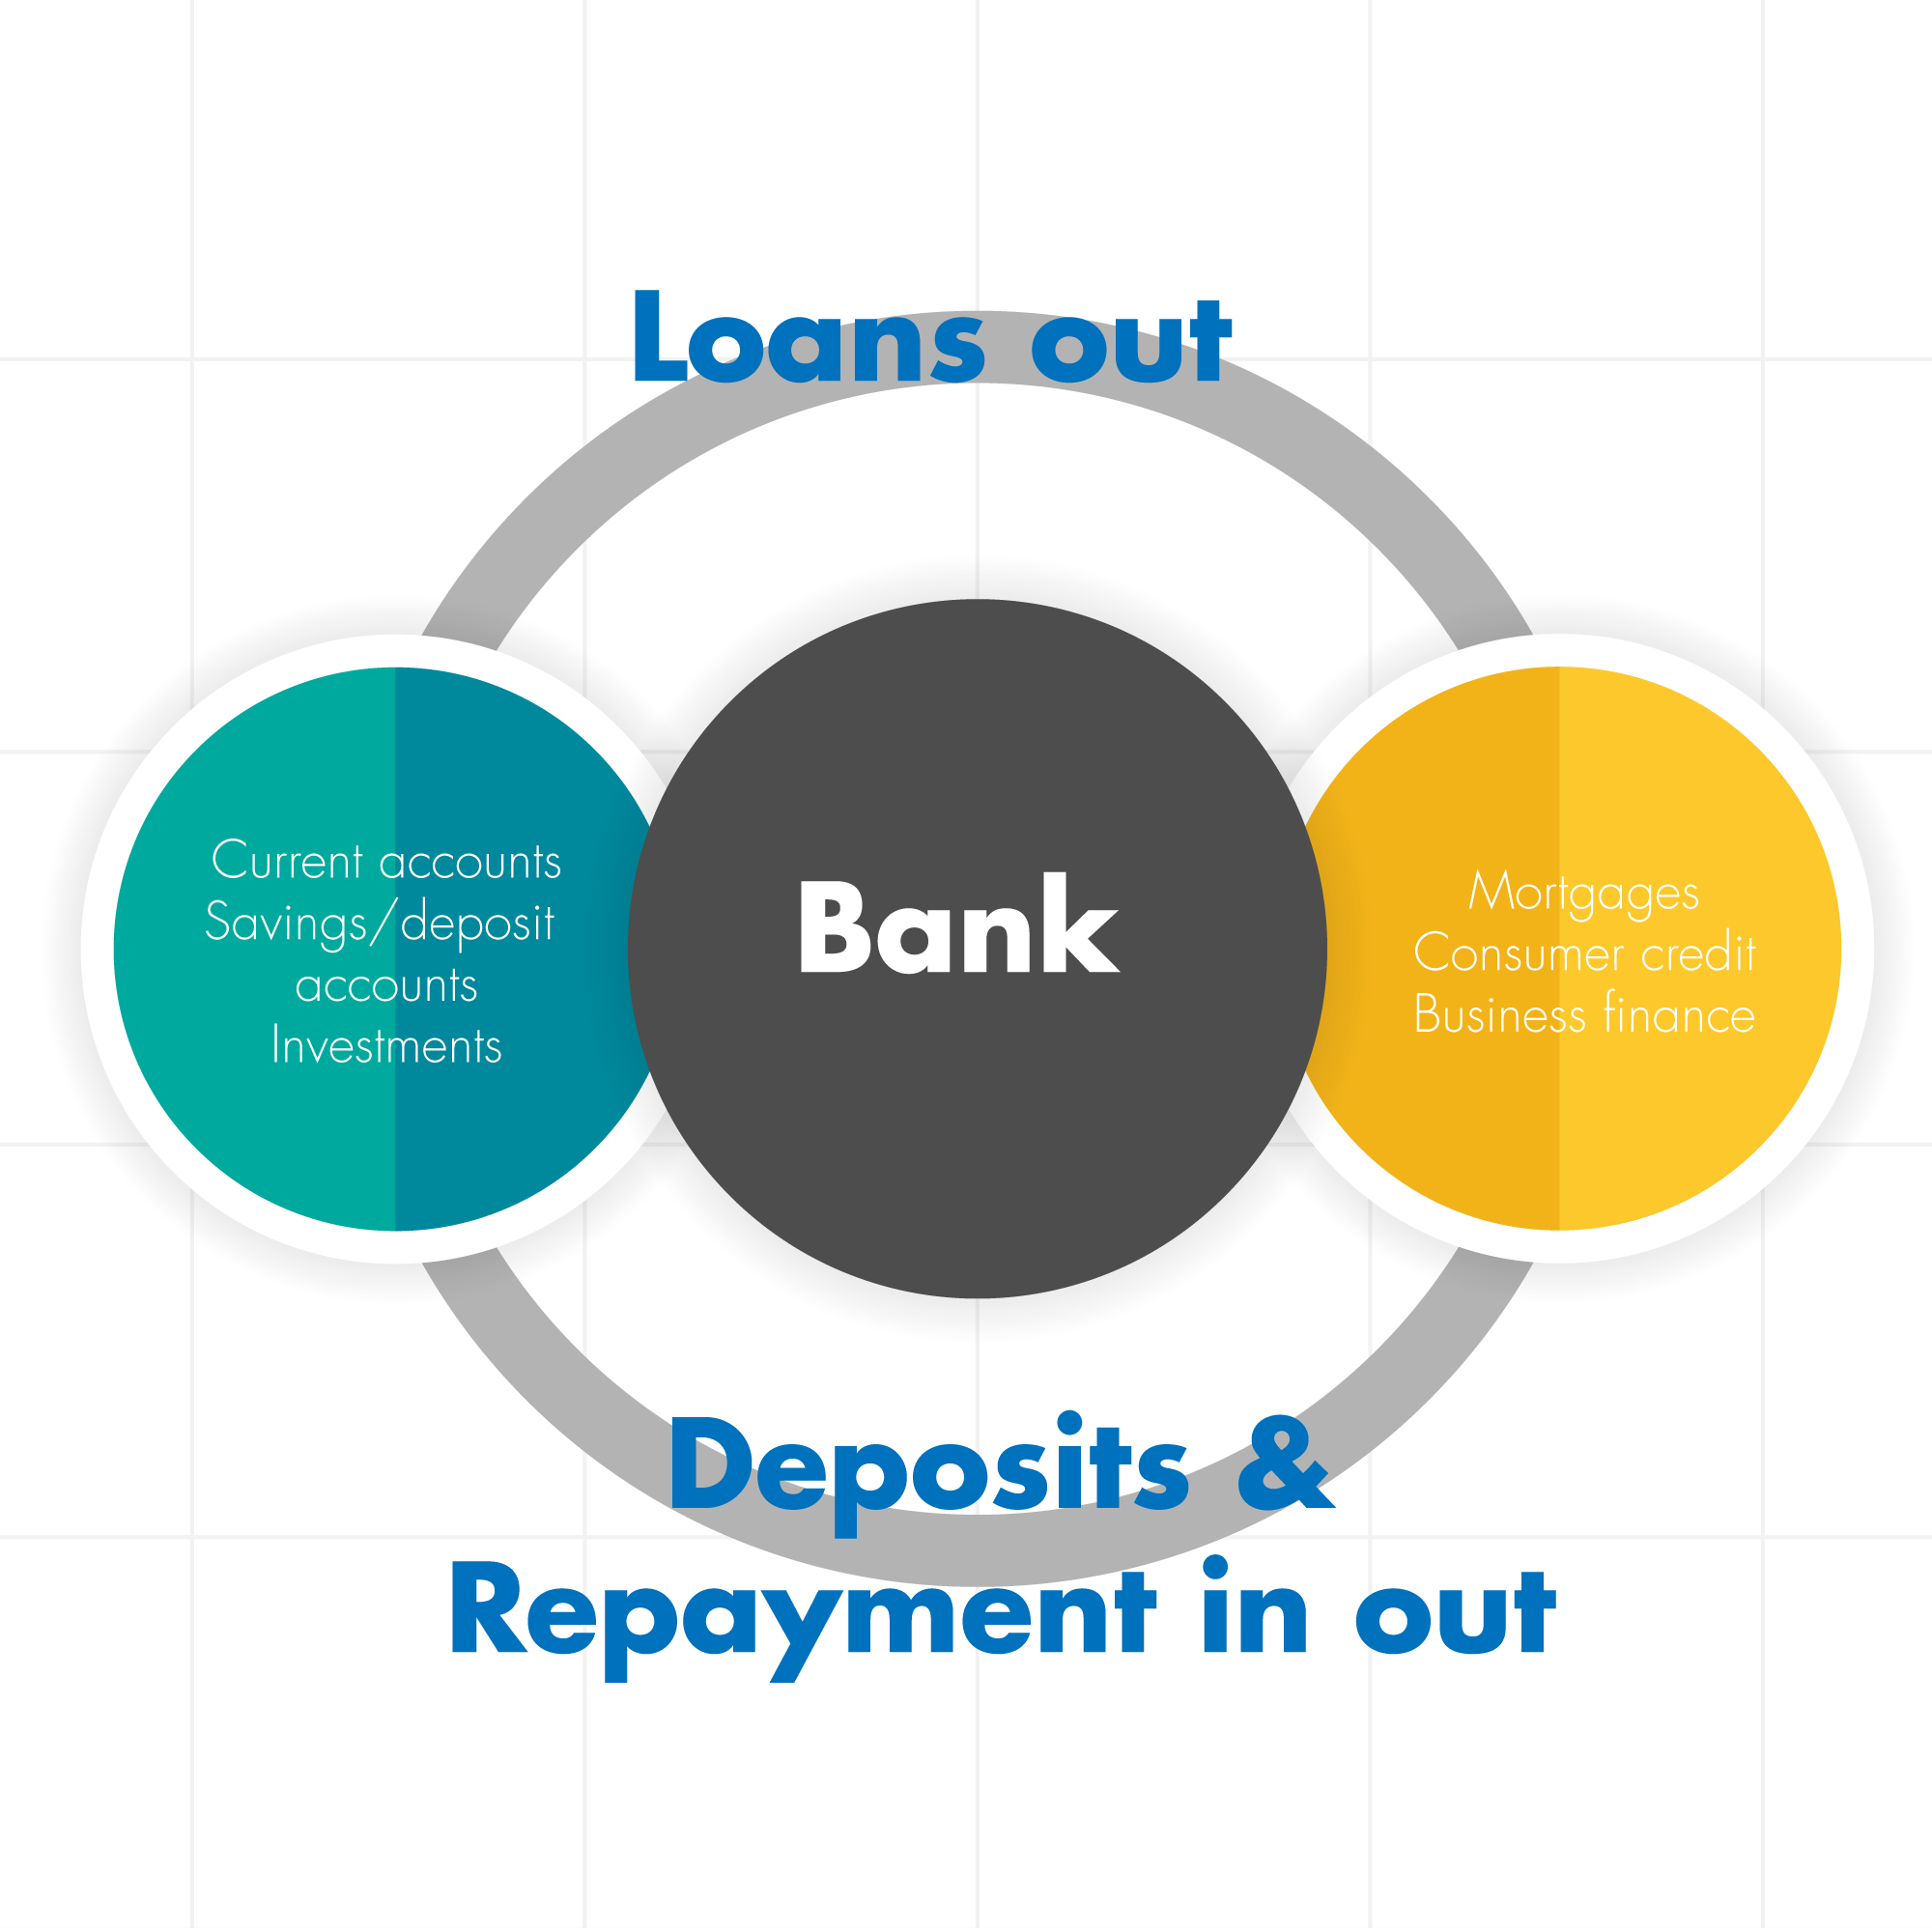 Deposits and deposits